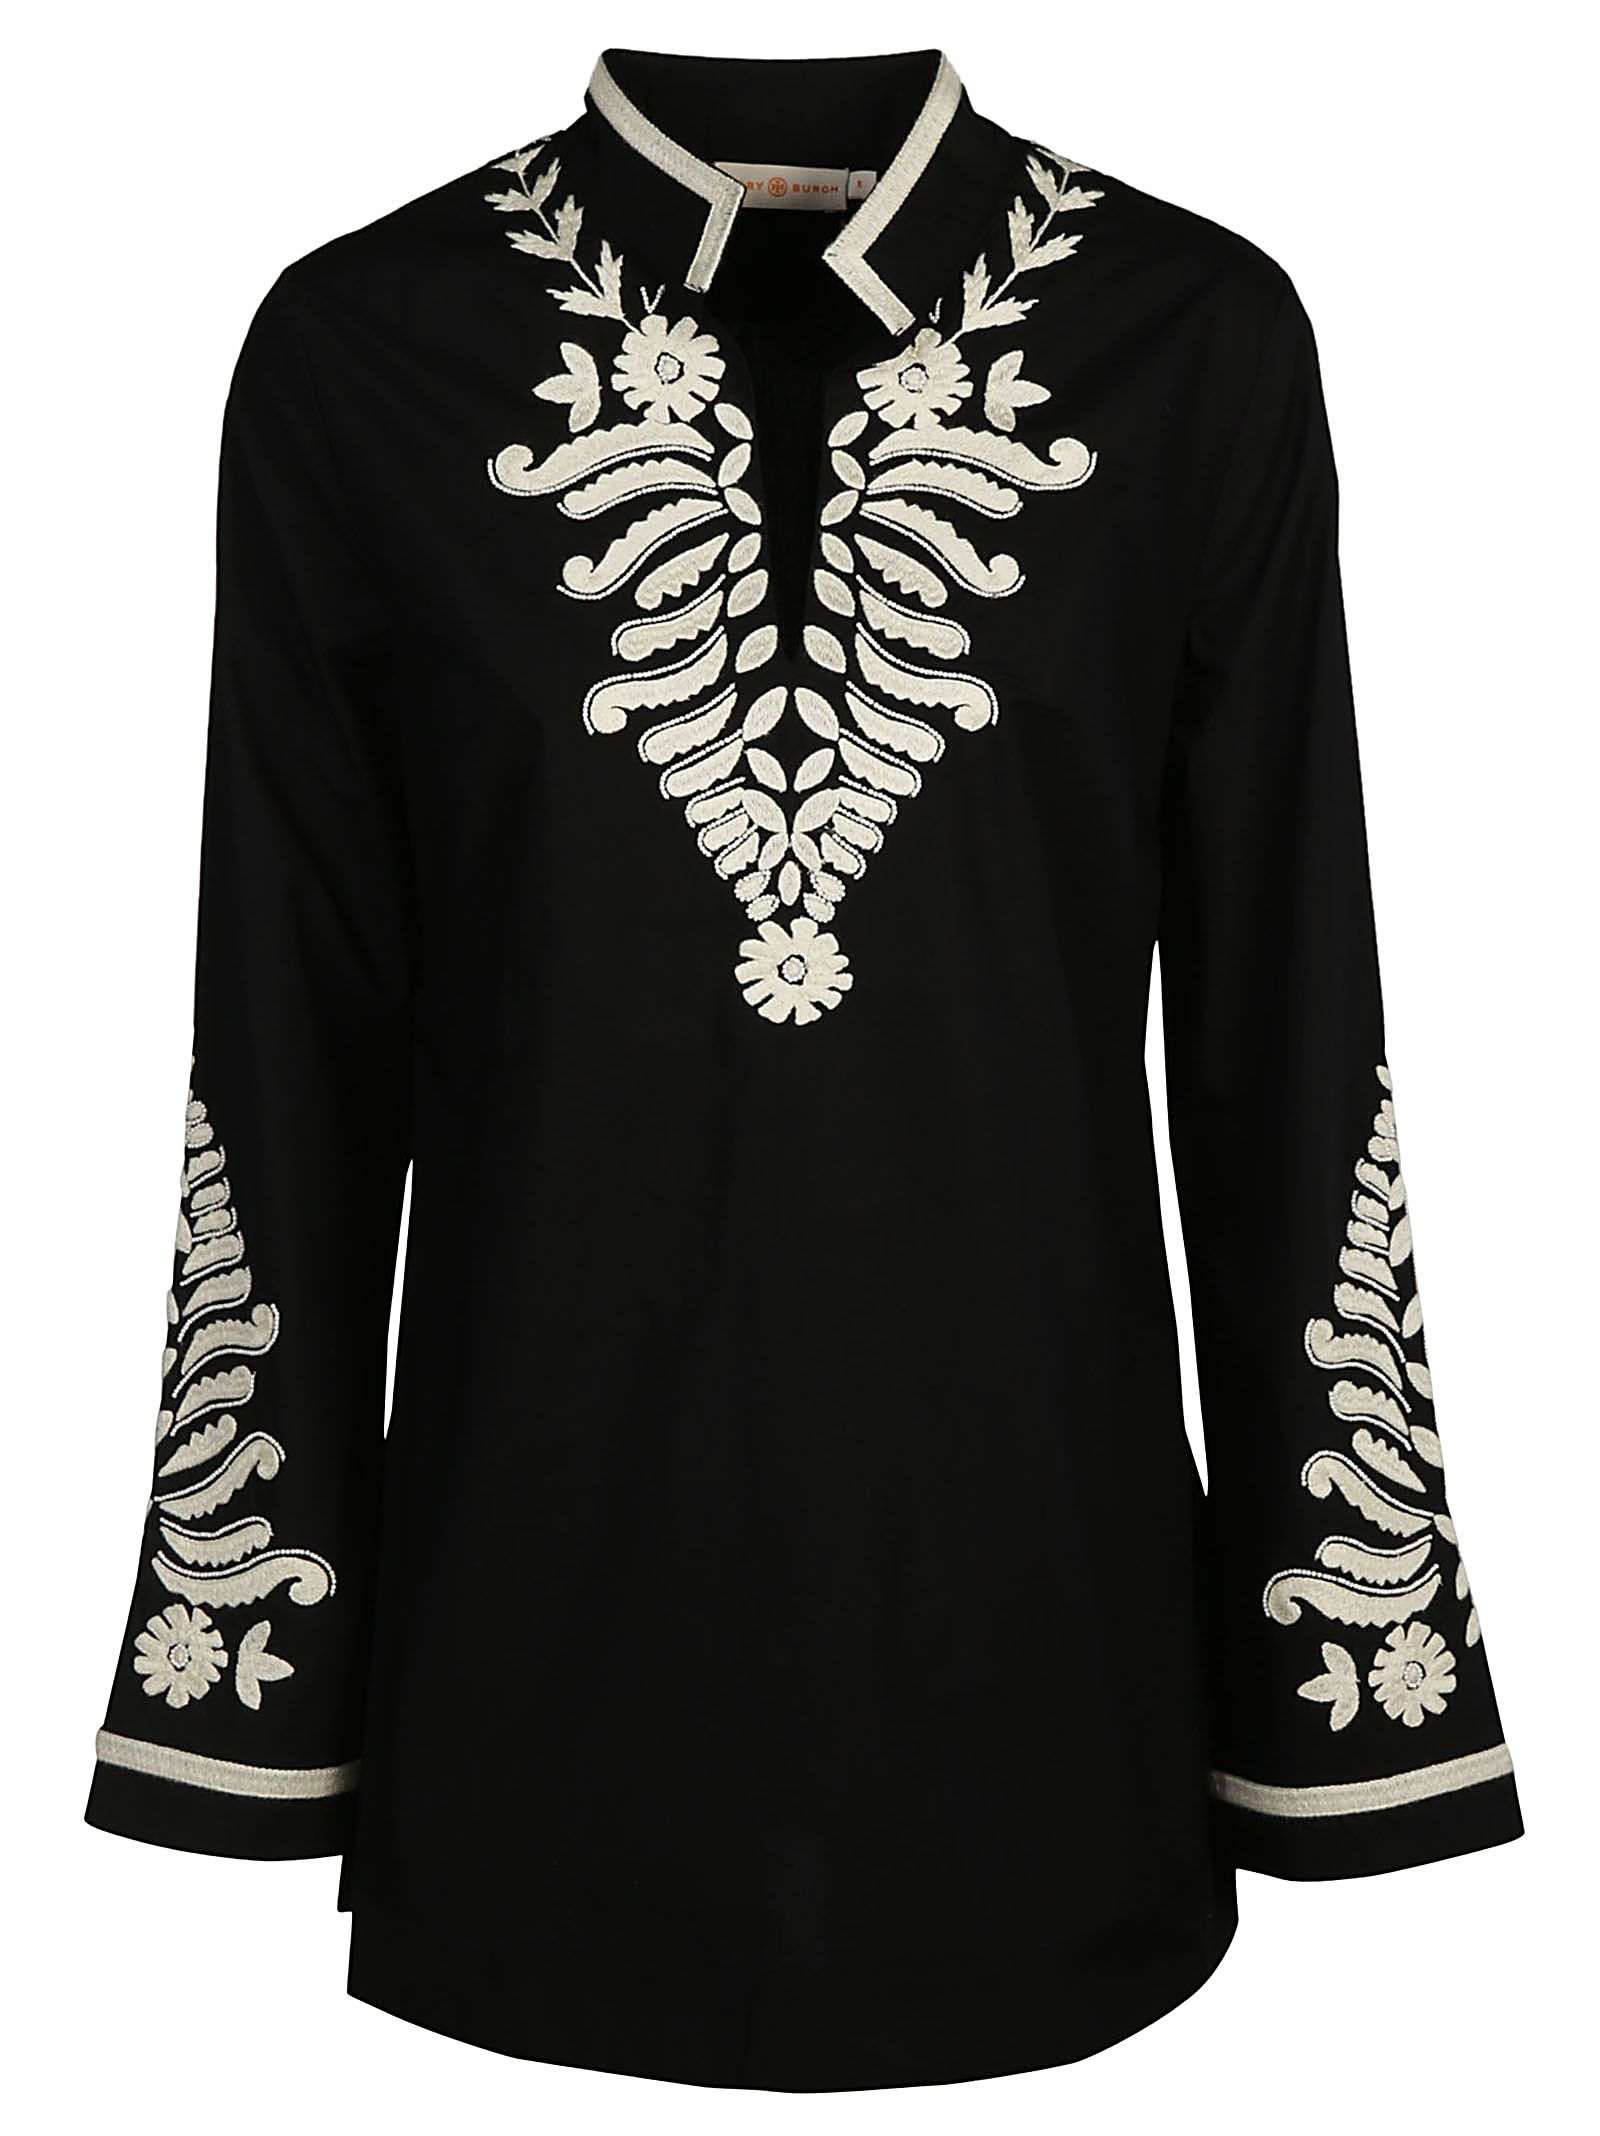 Tory Burch Embellished Tory Tunic Top